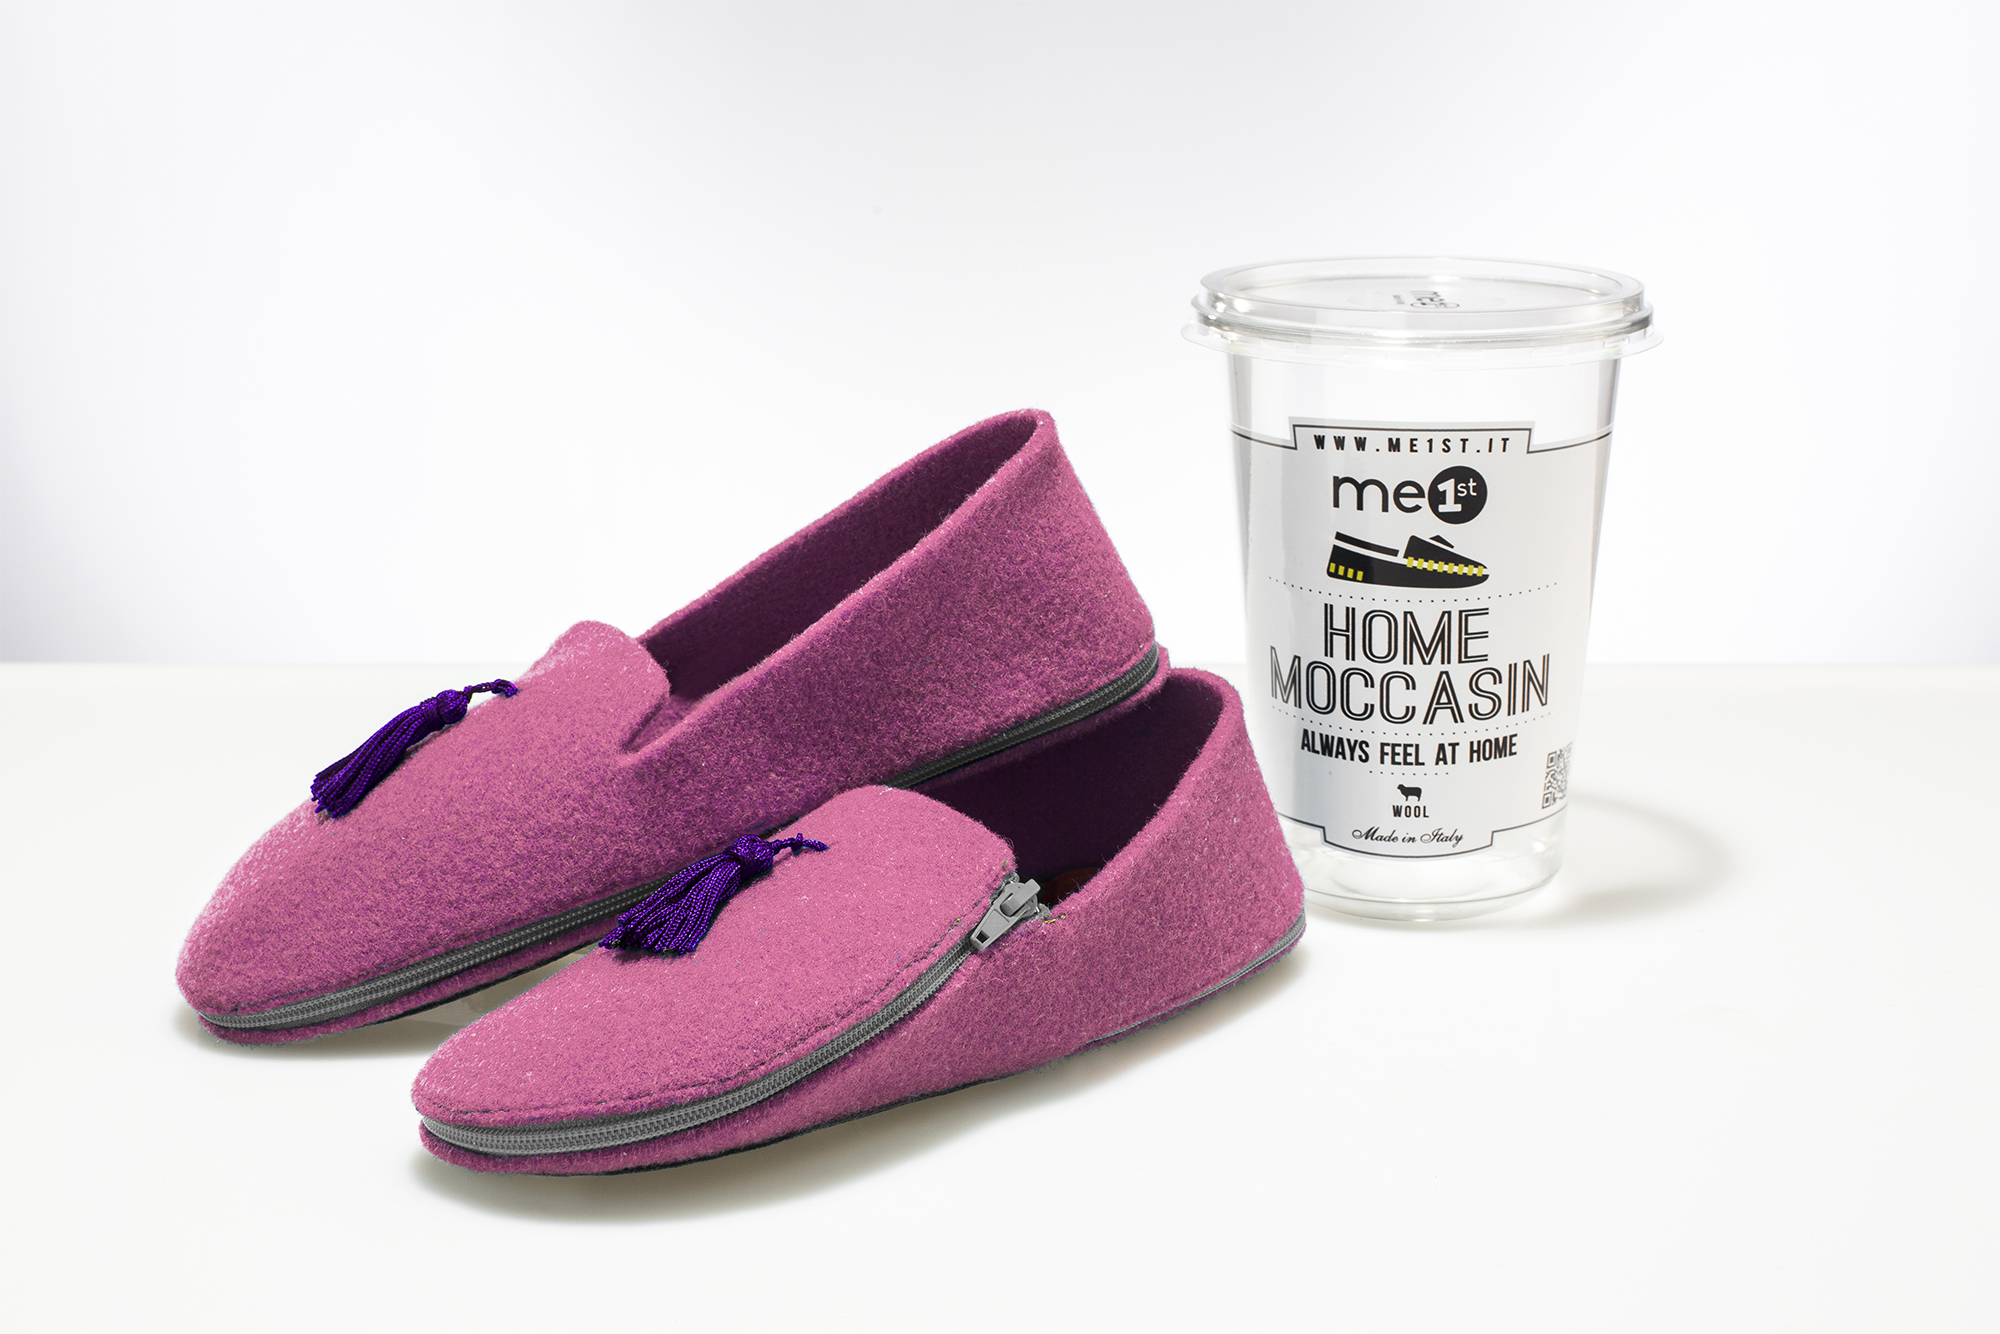 Home Moccasin ORIGINAL + Pack